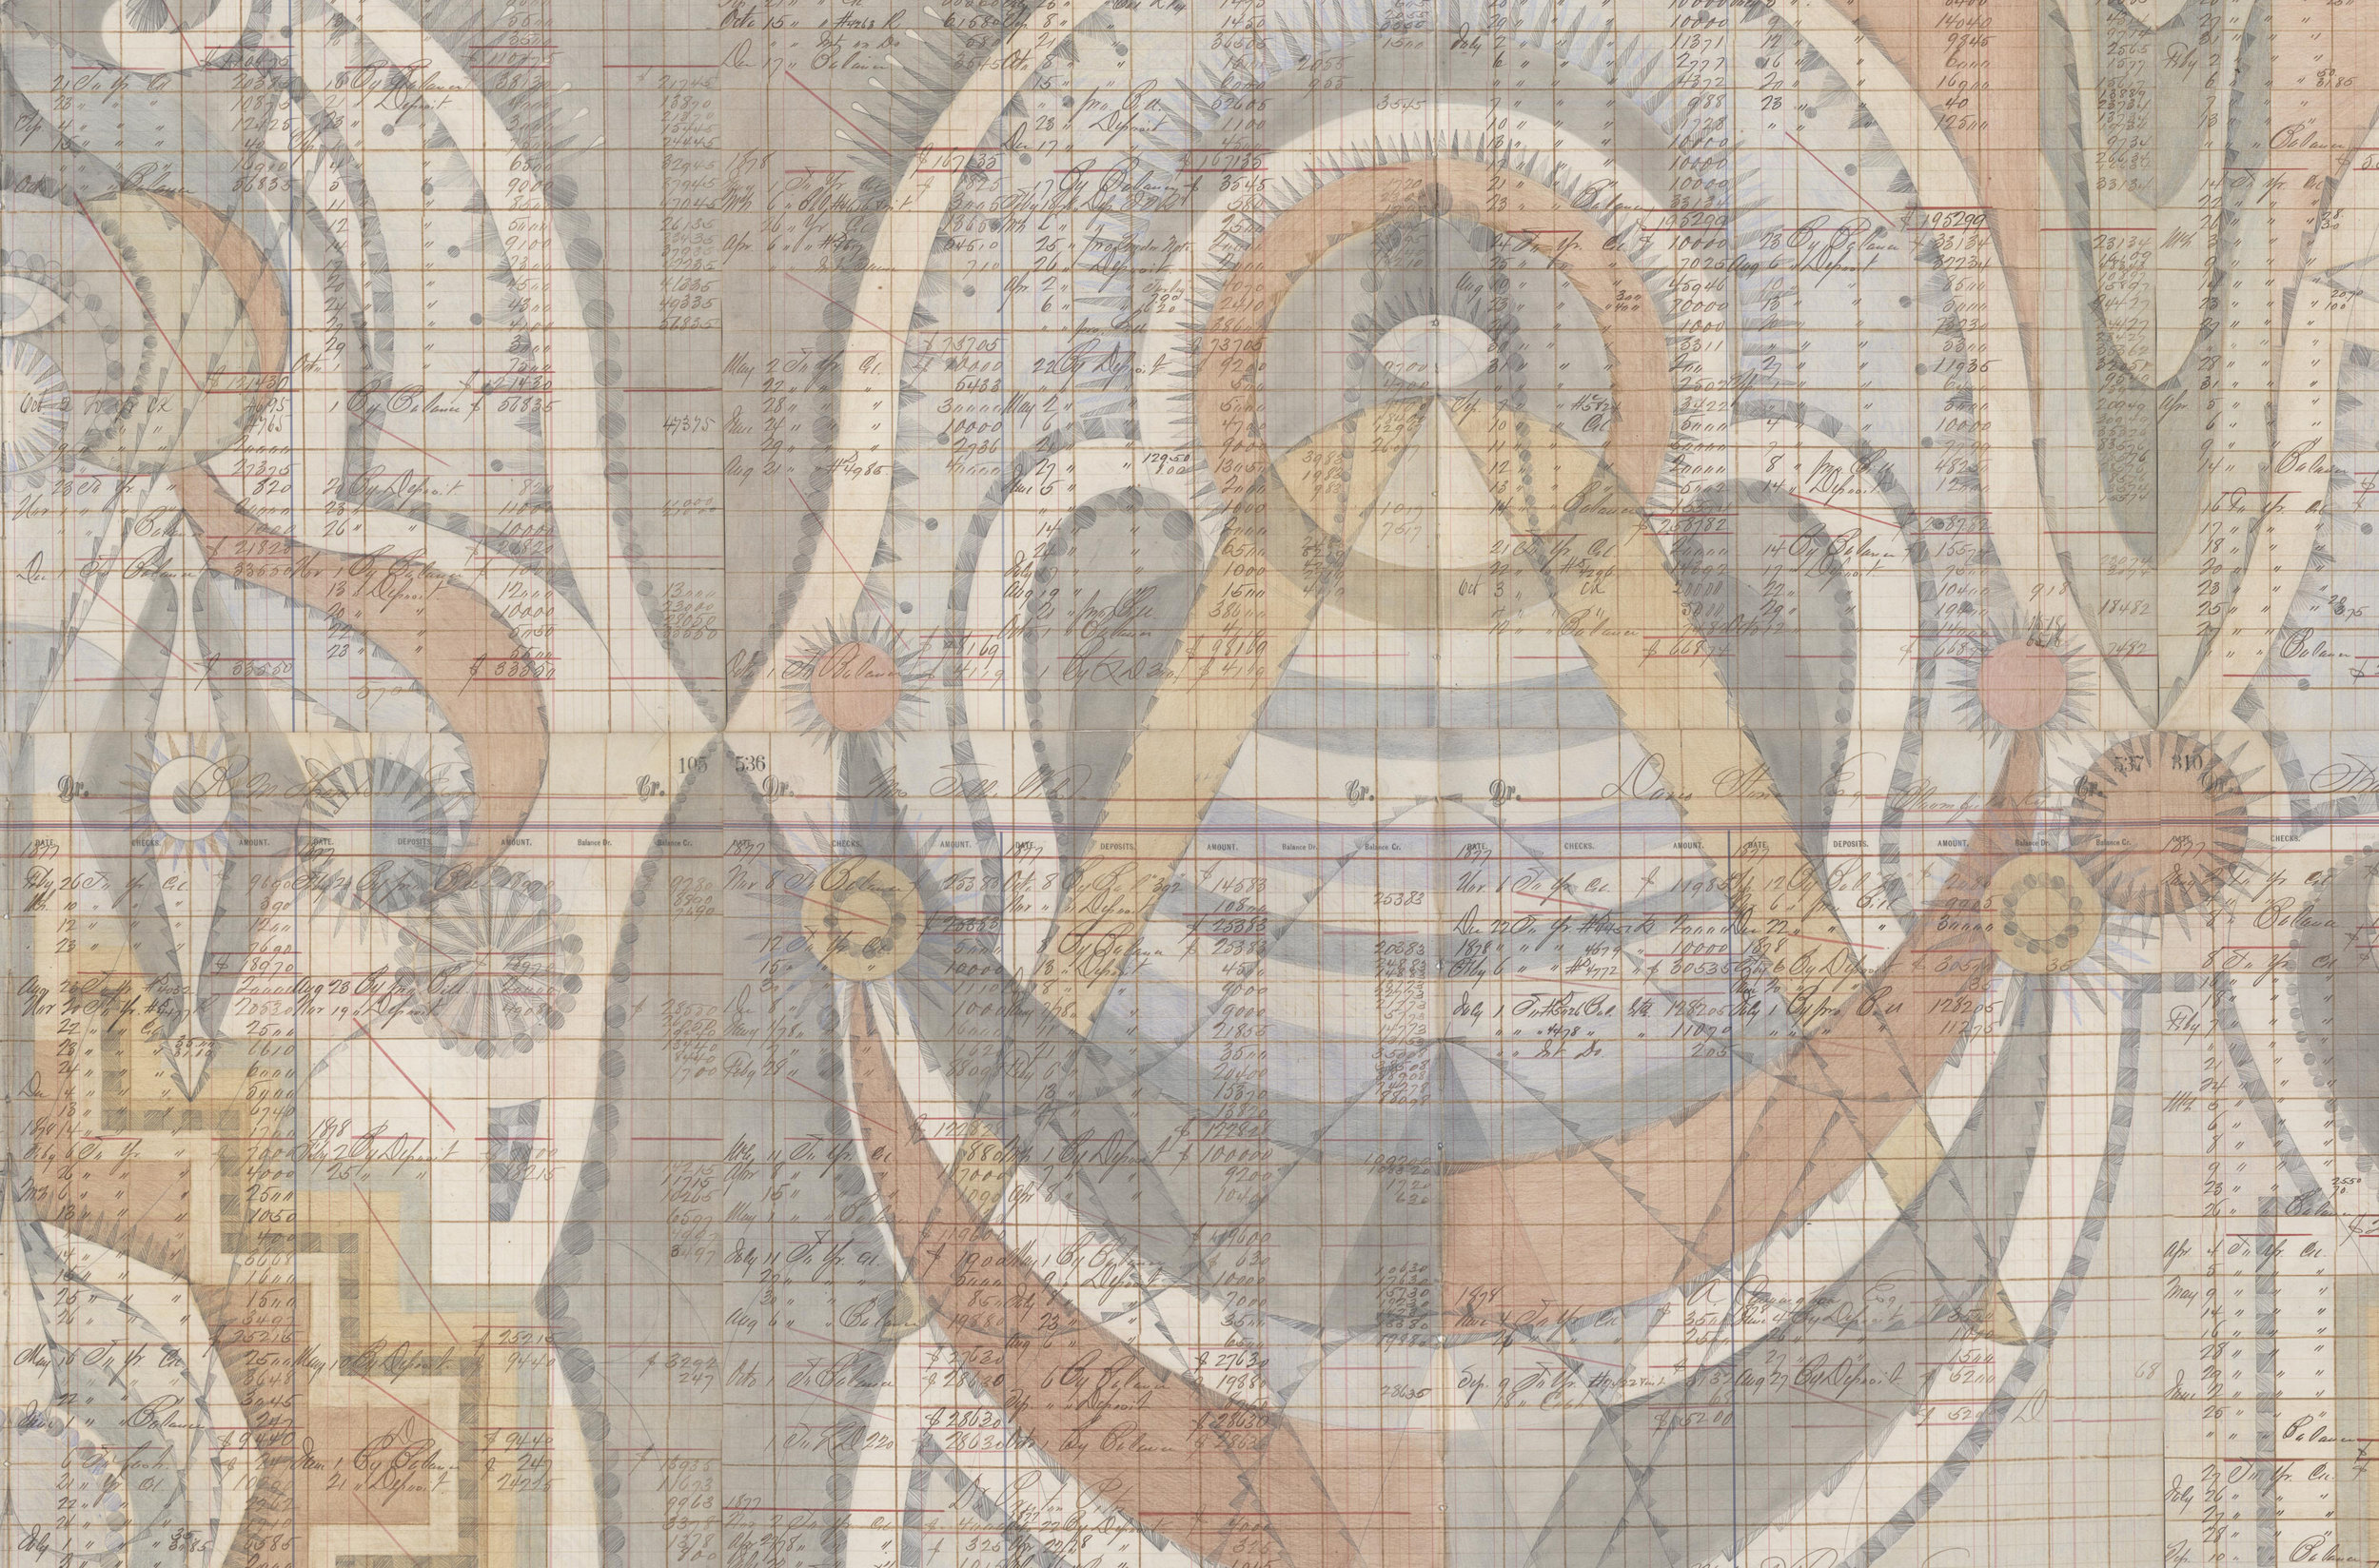 DETAIL of Stepwell Figures,Colored Pencil and Graphite on Antique Ledger Book Pages. 78 x 94.5 inches